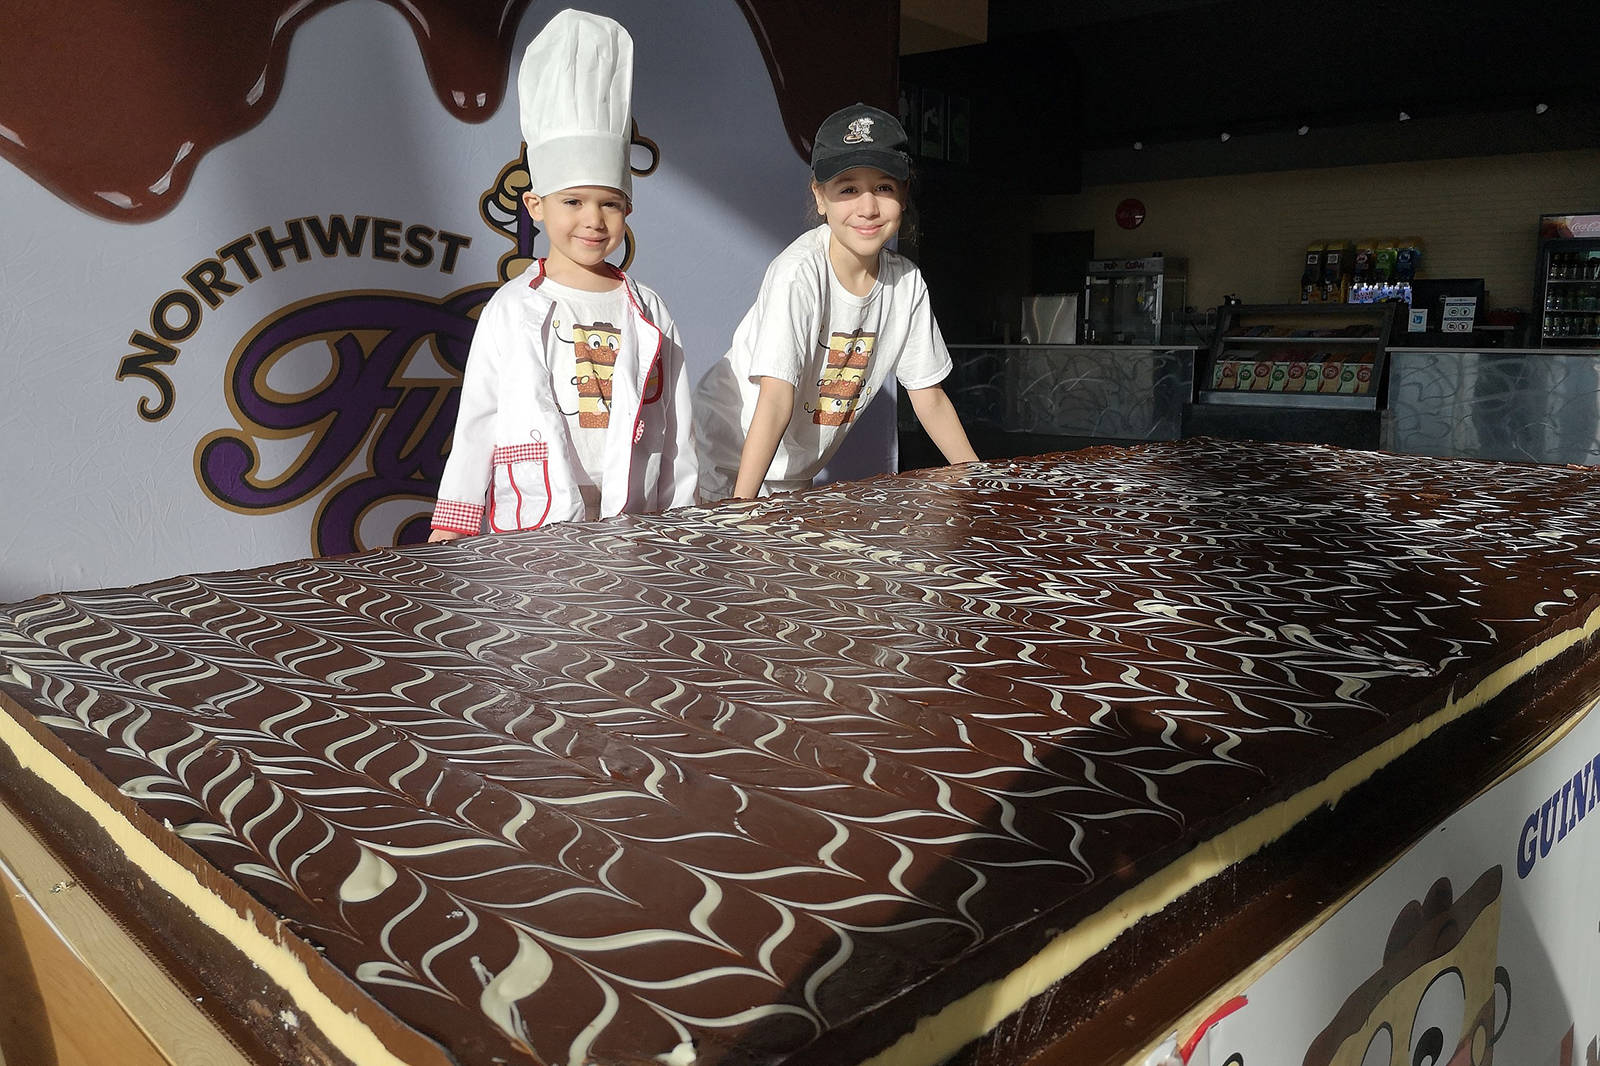 Austin Kurtis, 5, left, and his big sister Ella, 10, of Levack, Ont., helped create a 240-kilogram (530-pound) Nanaimo bar for a Guinness World Records attempt. (Photo submitted)